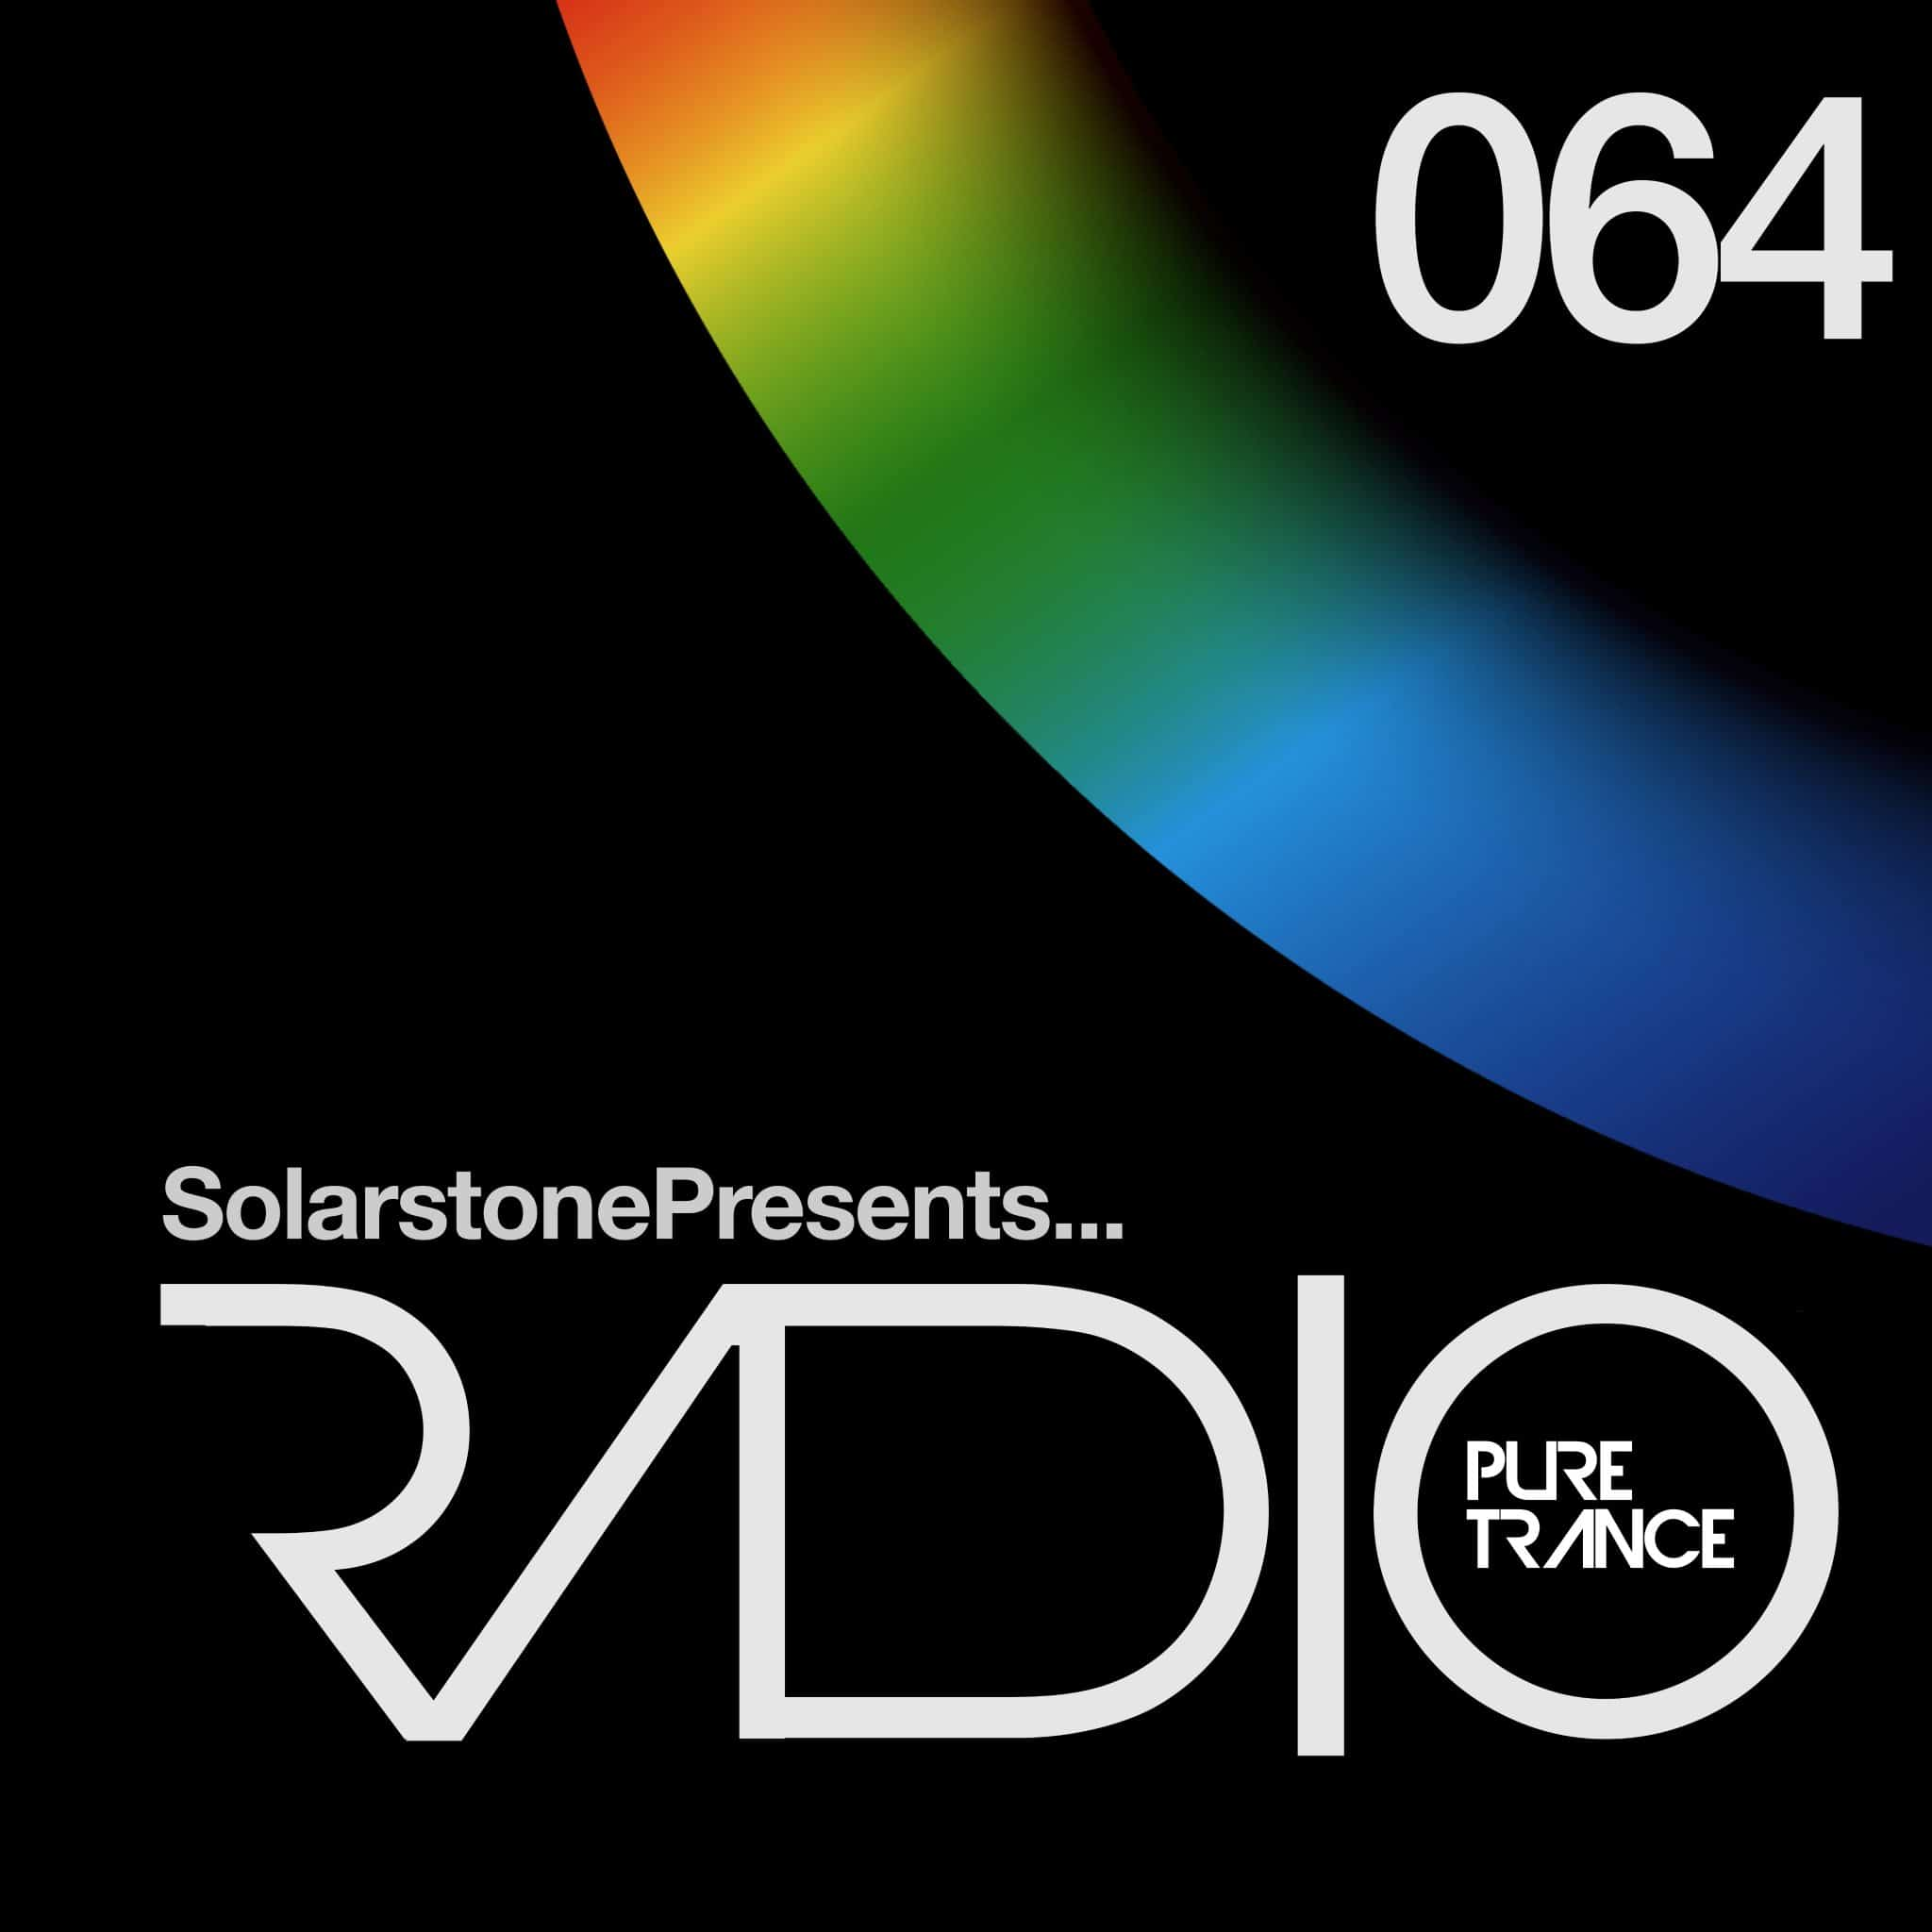 Pure Trance Radio 064 (30.11.2016) with Solarstone